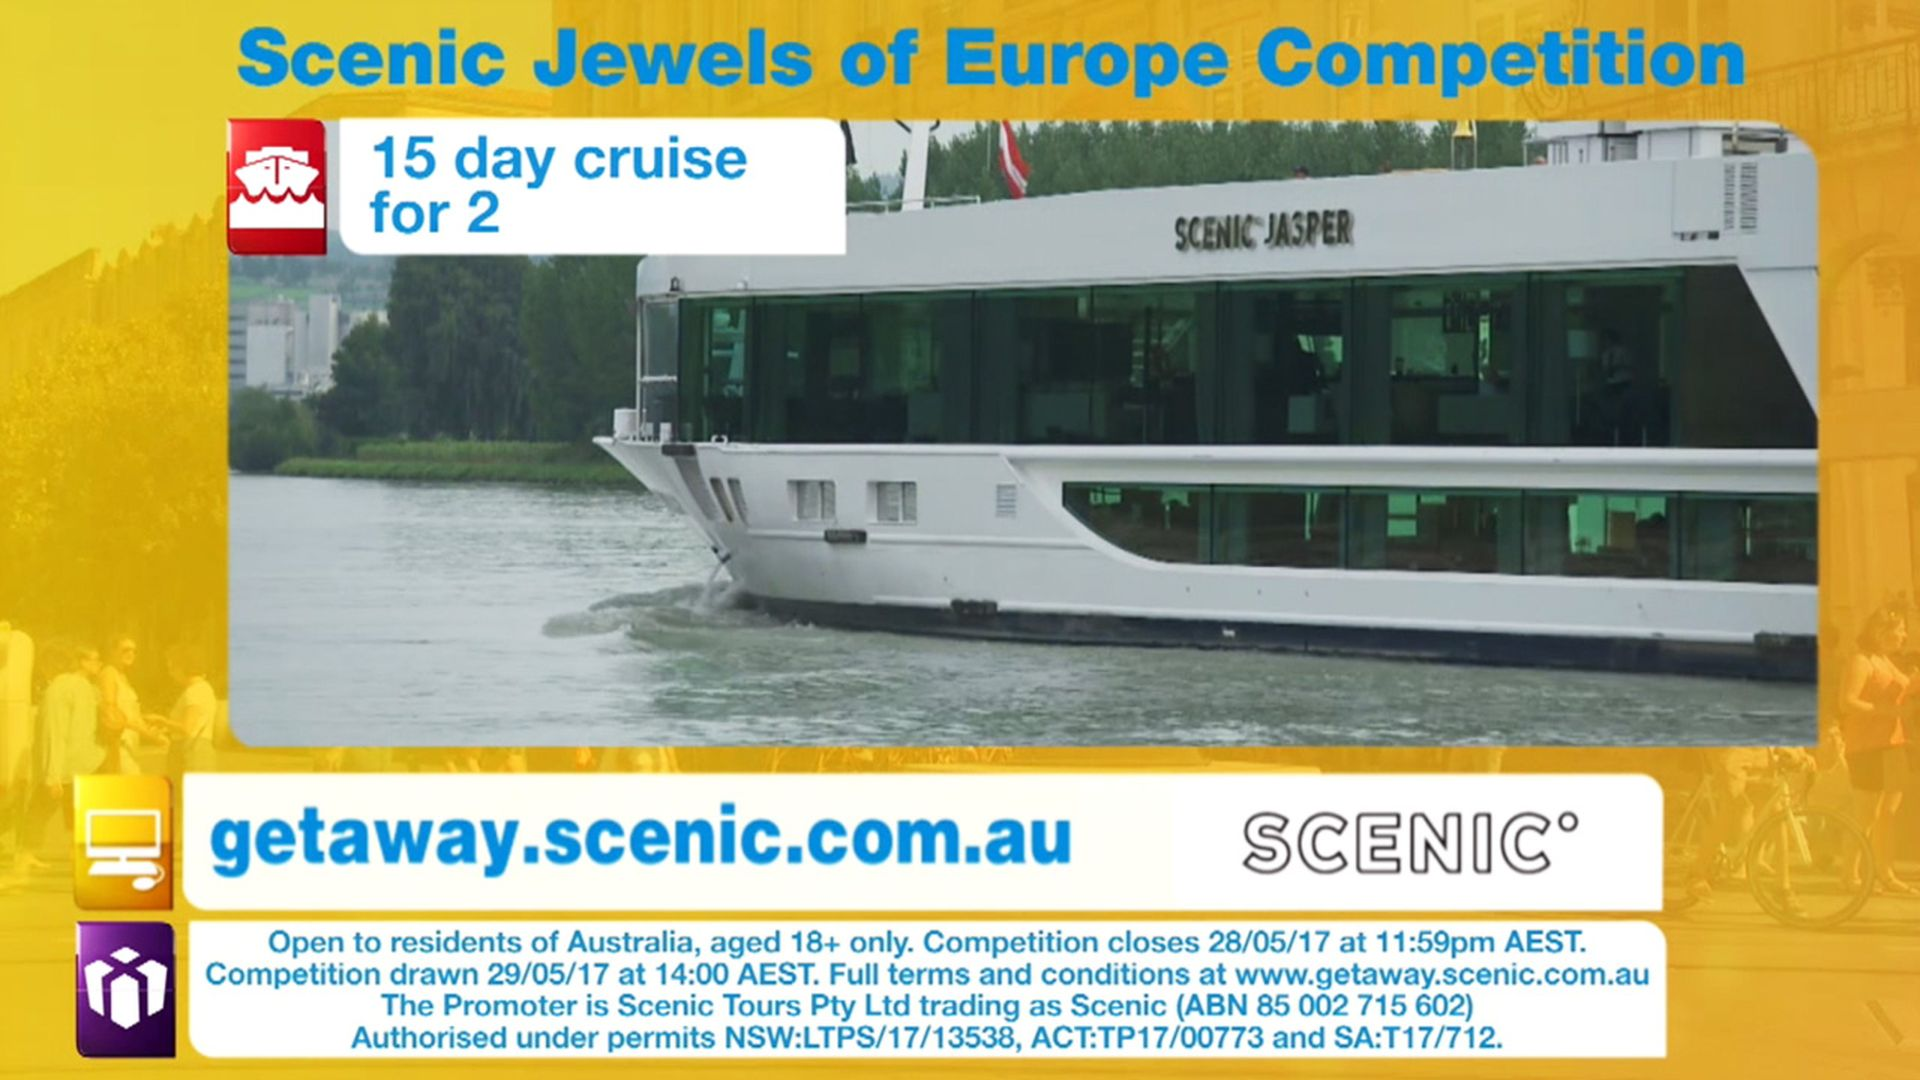 Drawn scenic day Scenic Watch of 2017 Europe